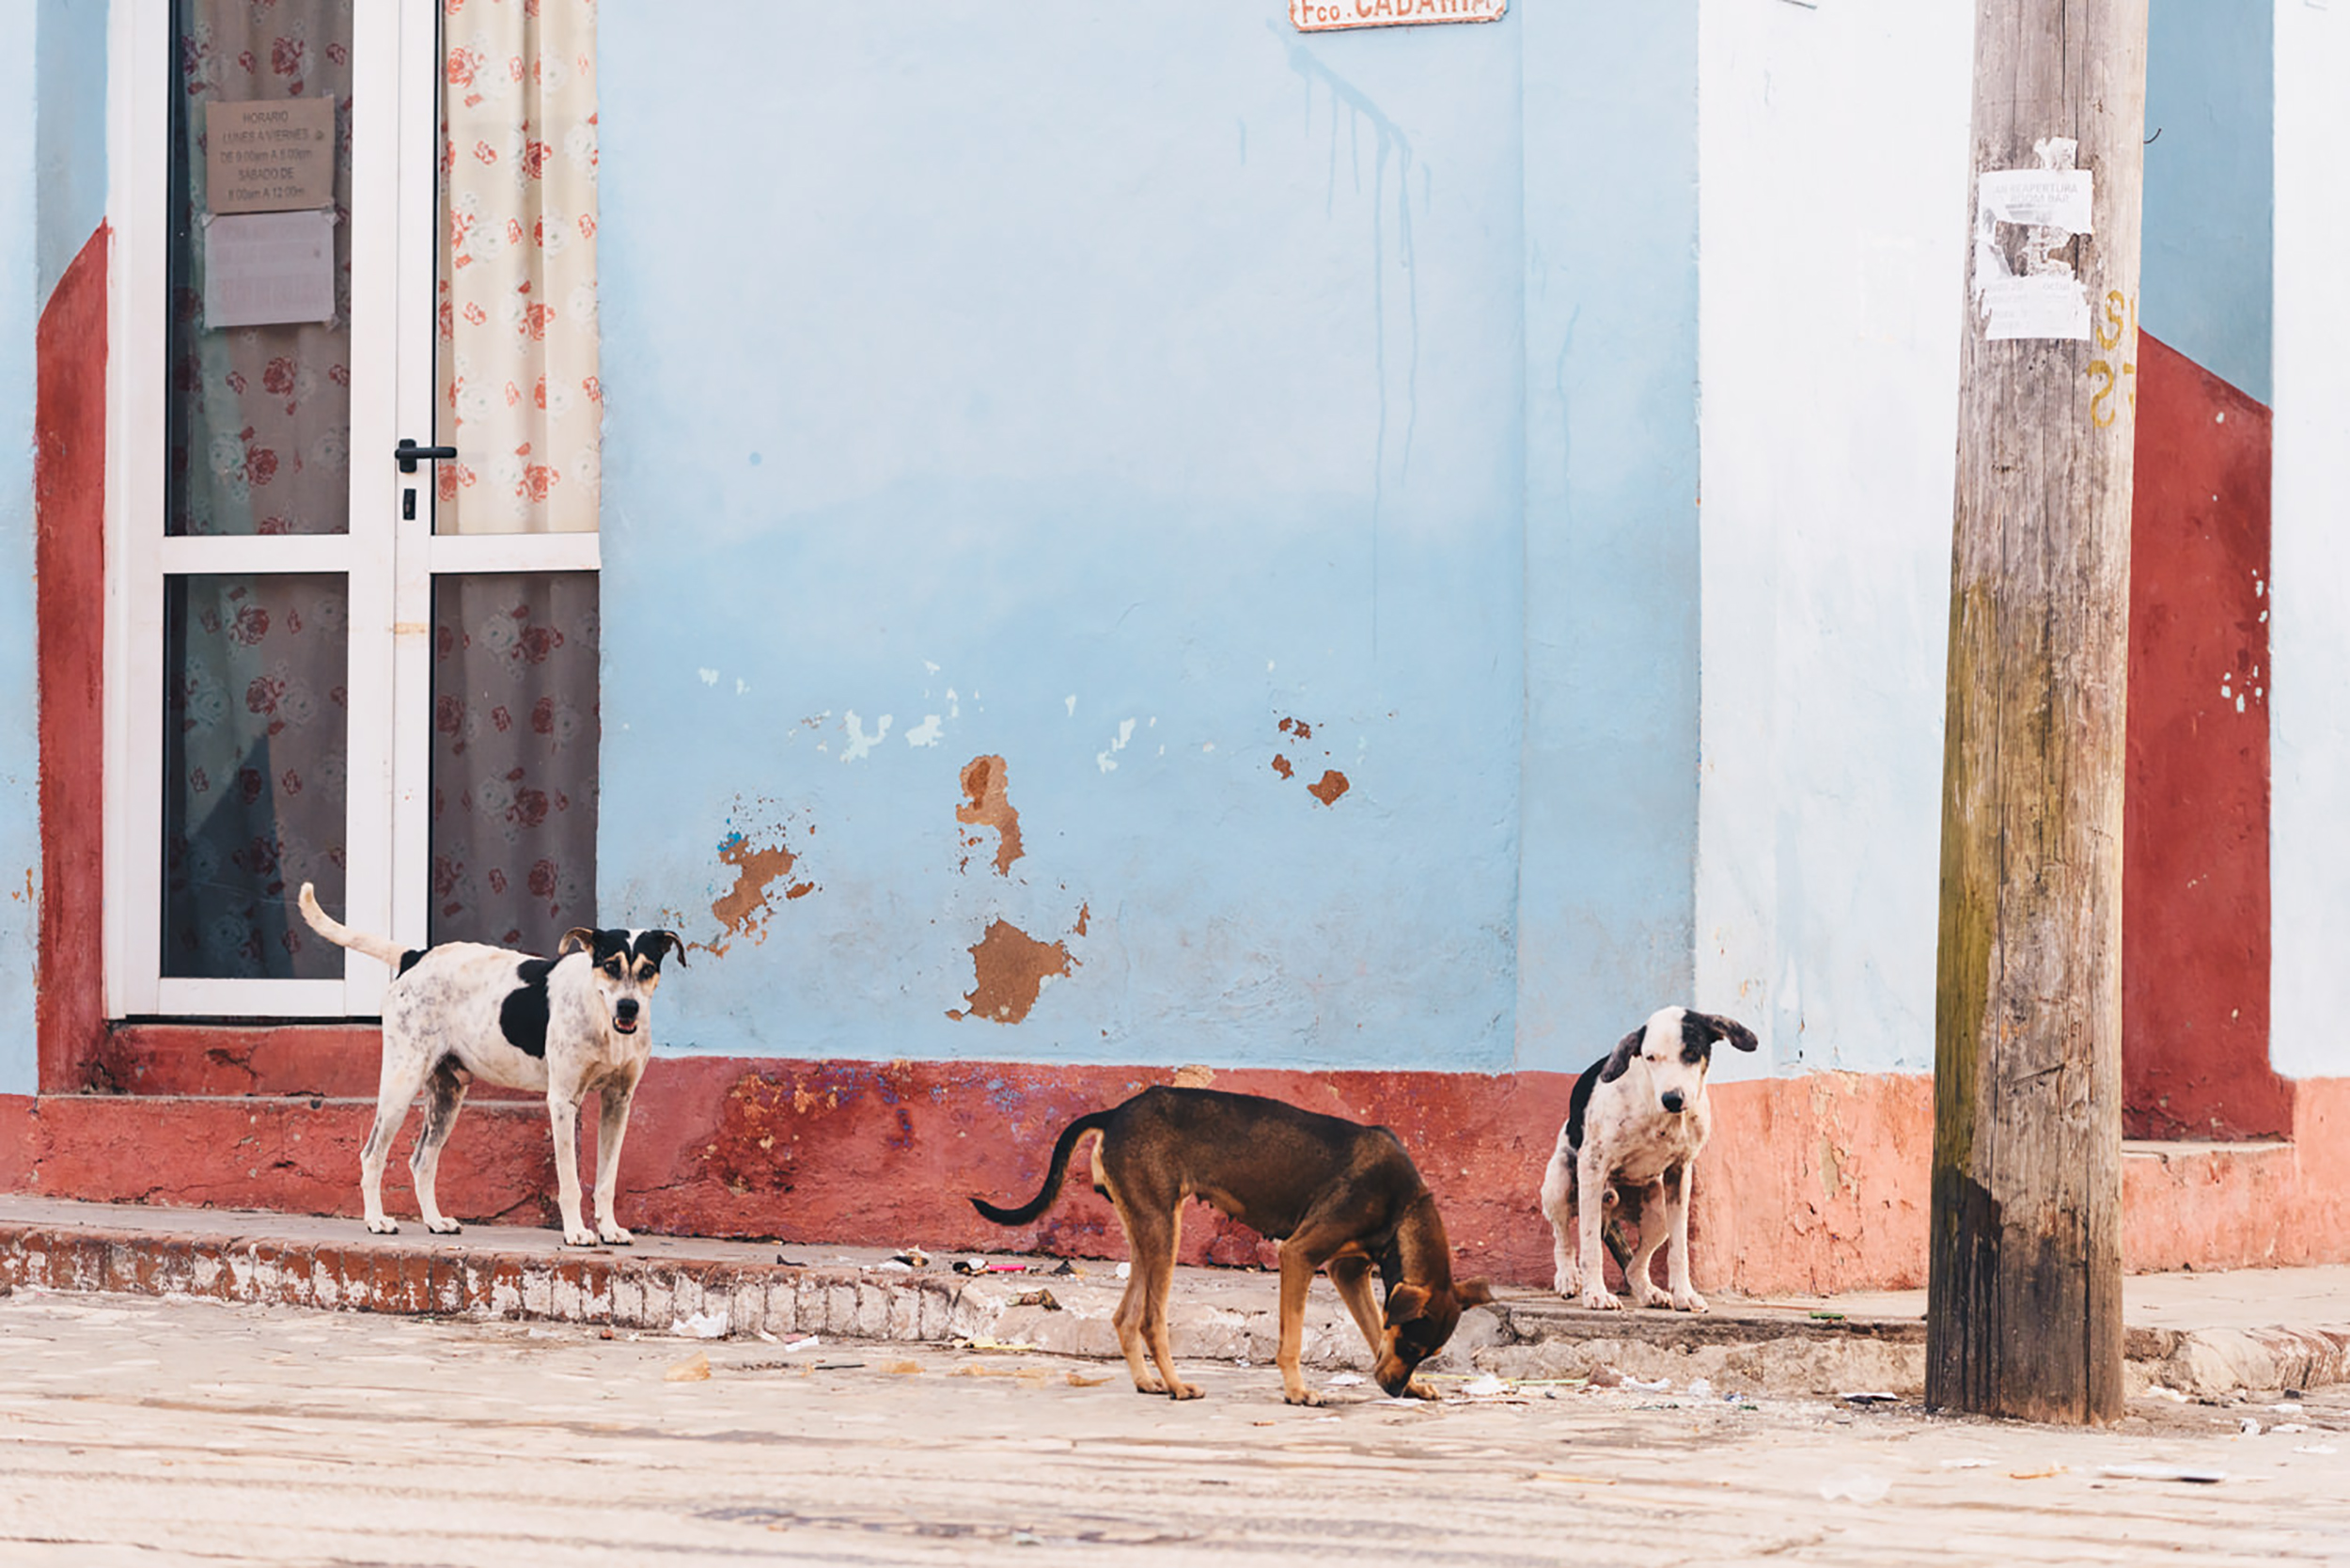 Stray dogs in Cuba